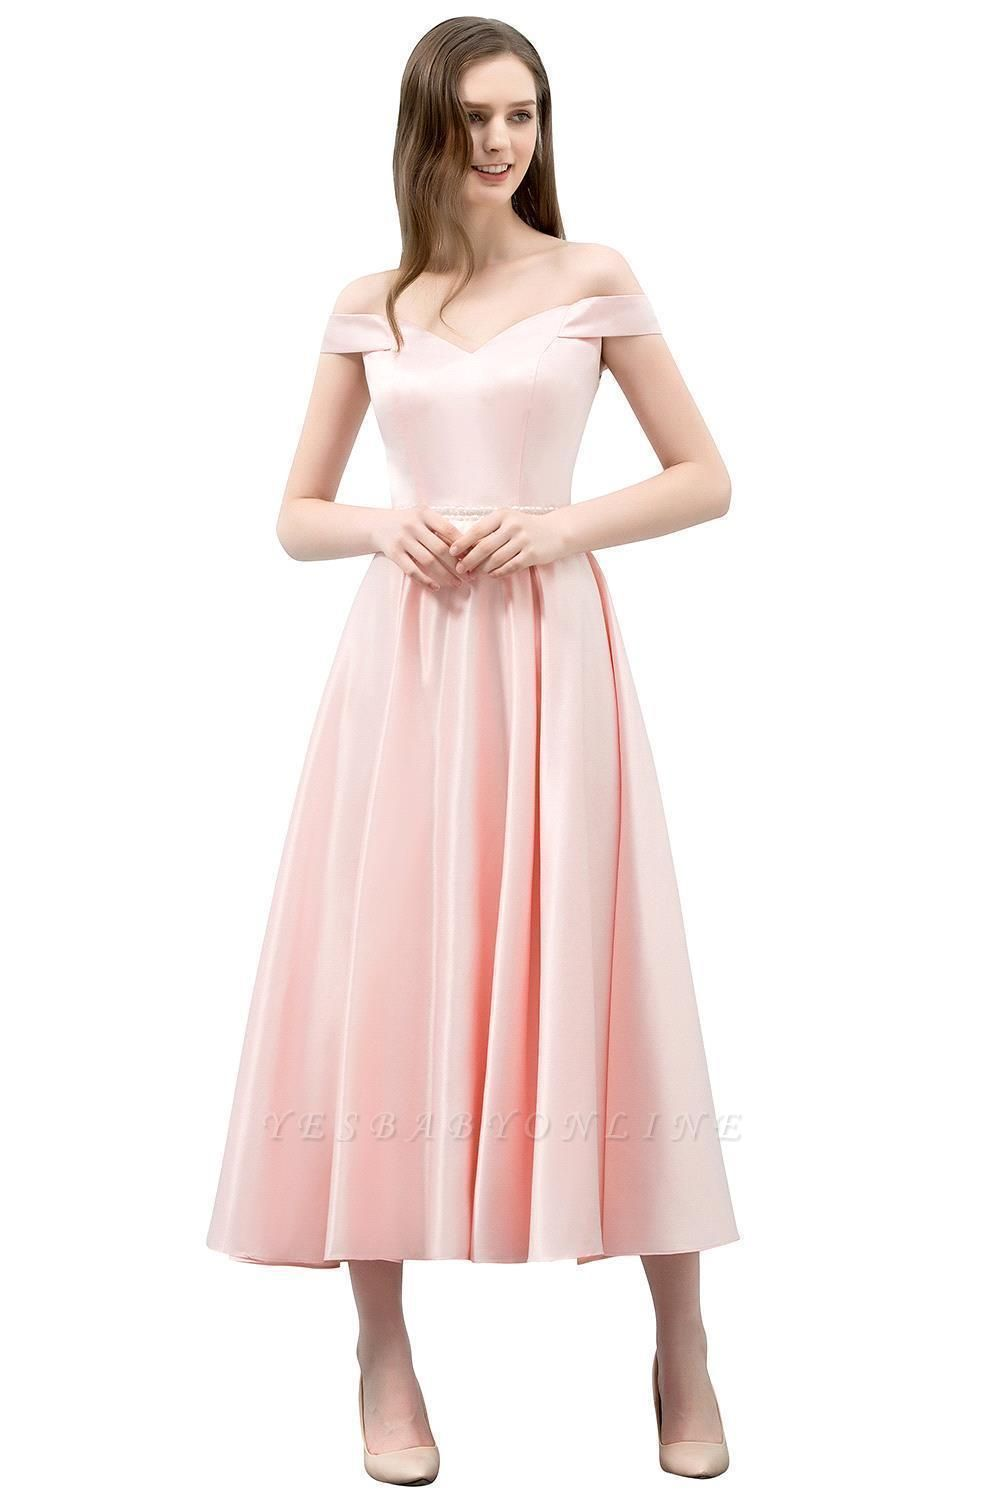 Cheap A-line Off-shoulder Tea Length Pink Prom Dress with Sash in Stock